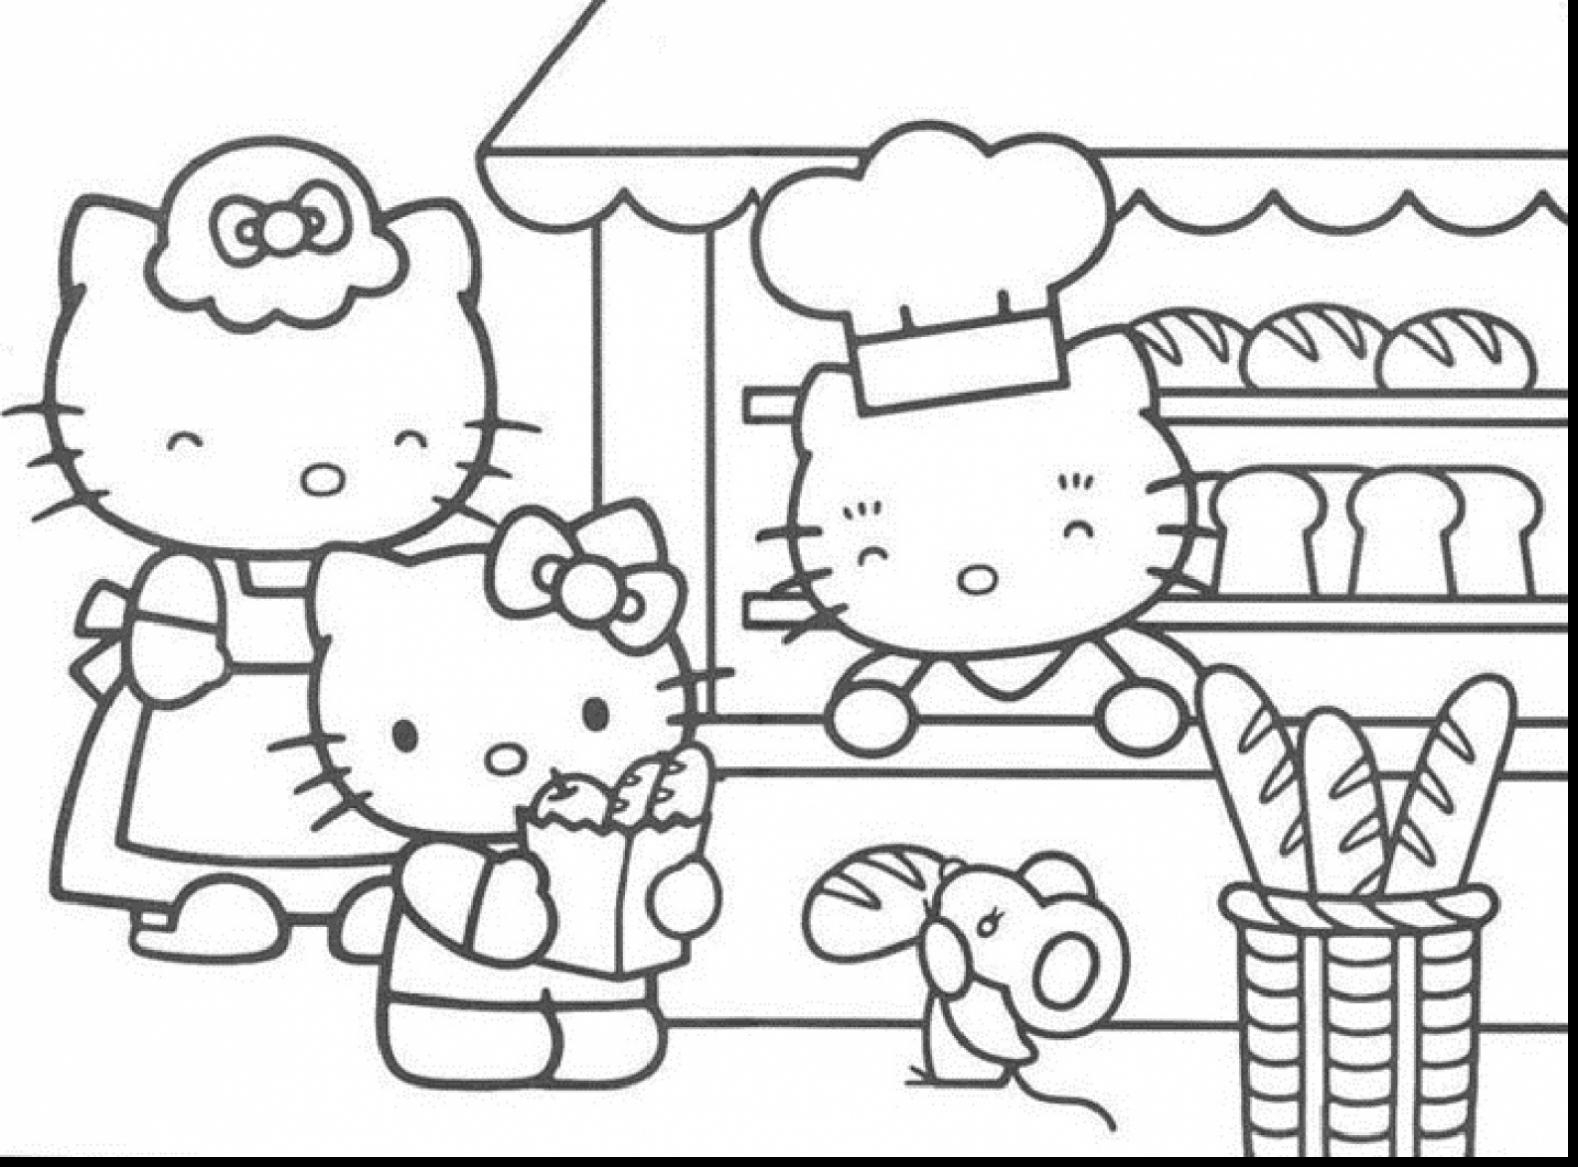 Cool Awesome Hello Kitty School Coloring Pages with Hello Kitty Gallery Of Proven Coloring Pages to Print Hello Kitty 2895 Unknown Printable